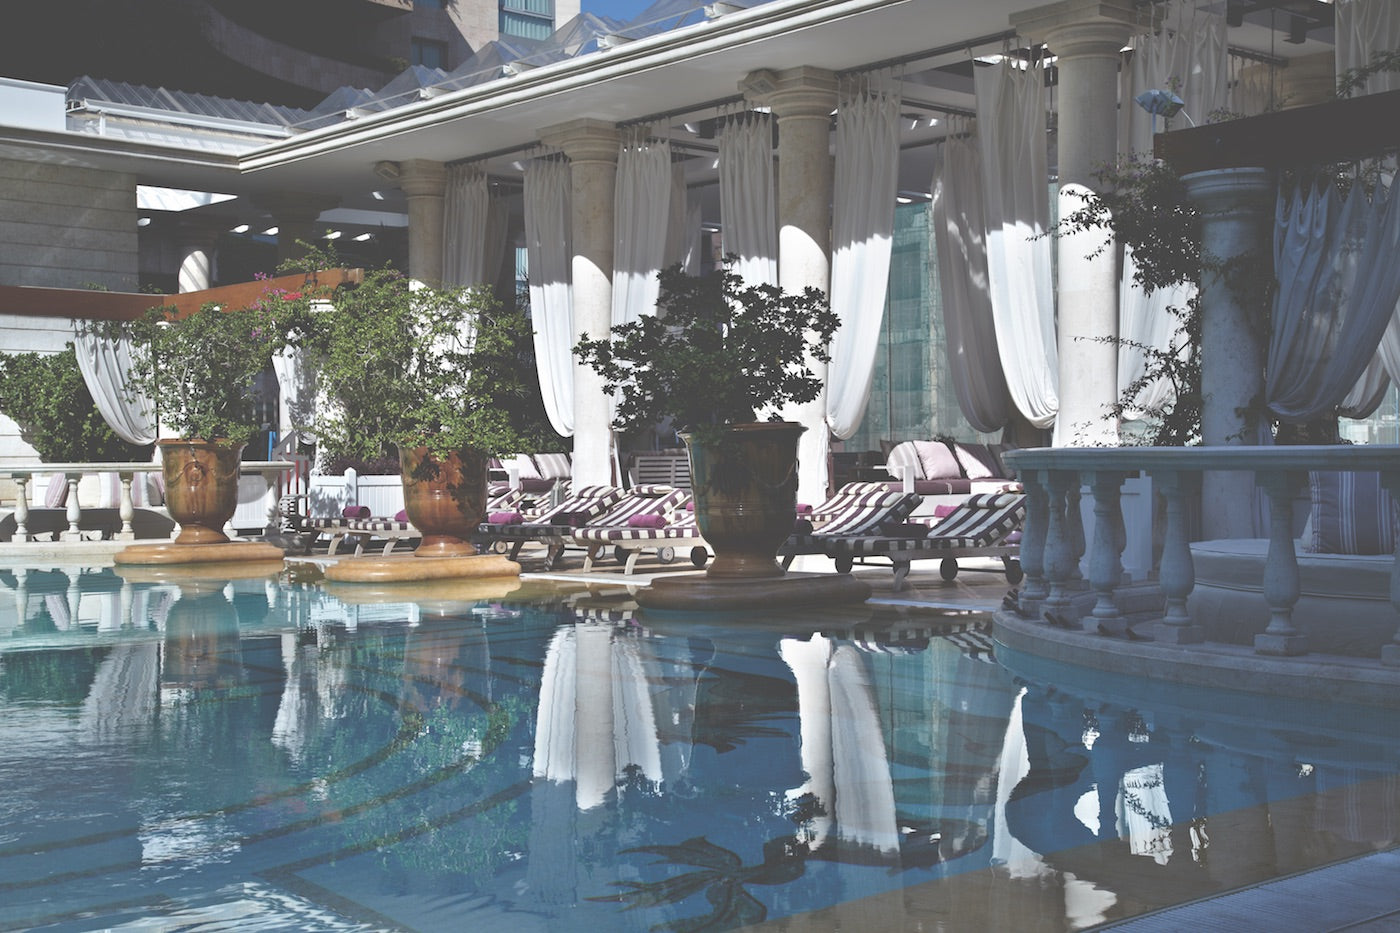 Spacious pool at Hote Phoenicia in Beirut. In the background, lounging furniture and curtains in front of large windows. (Photo: Monocle)